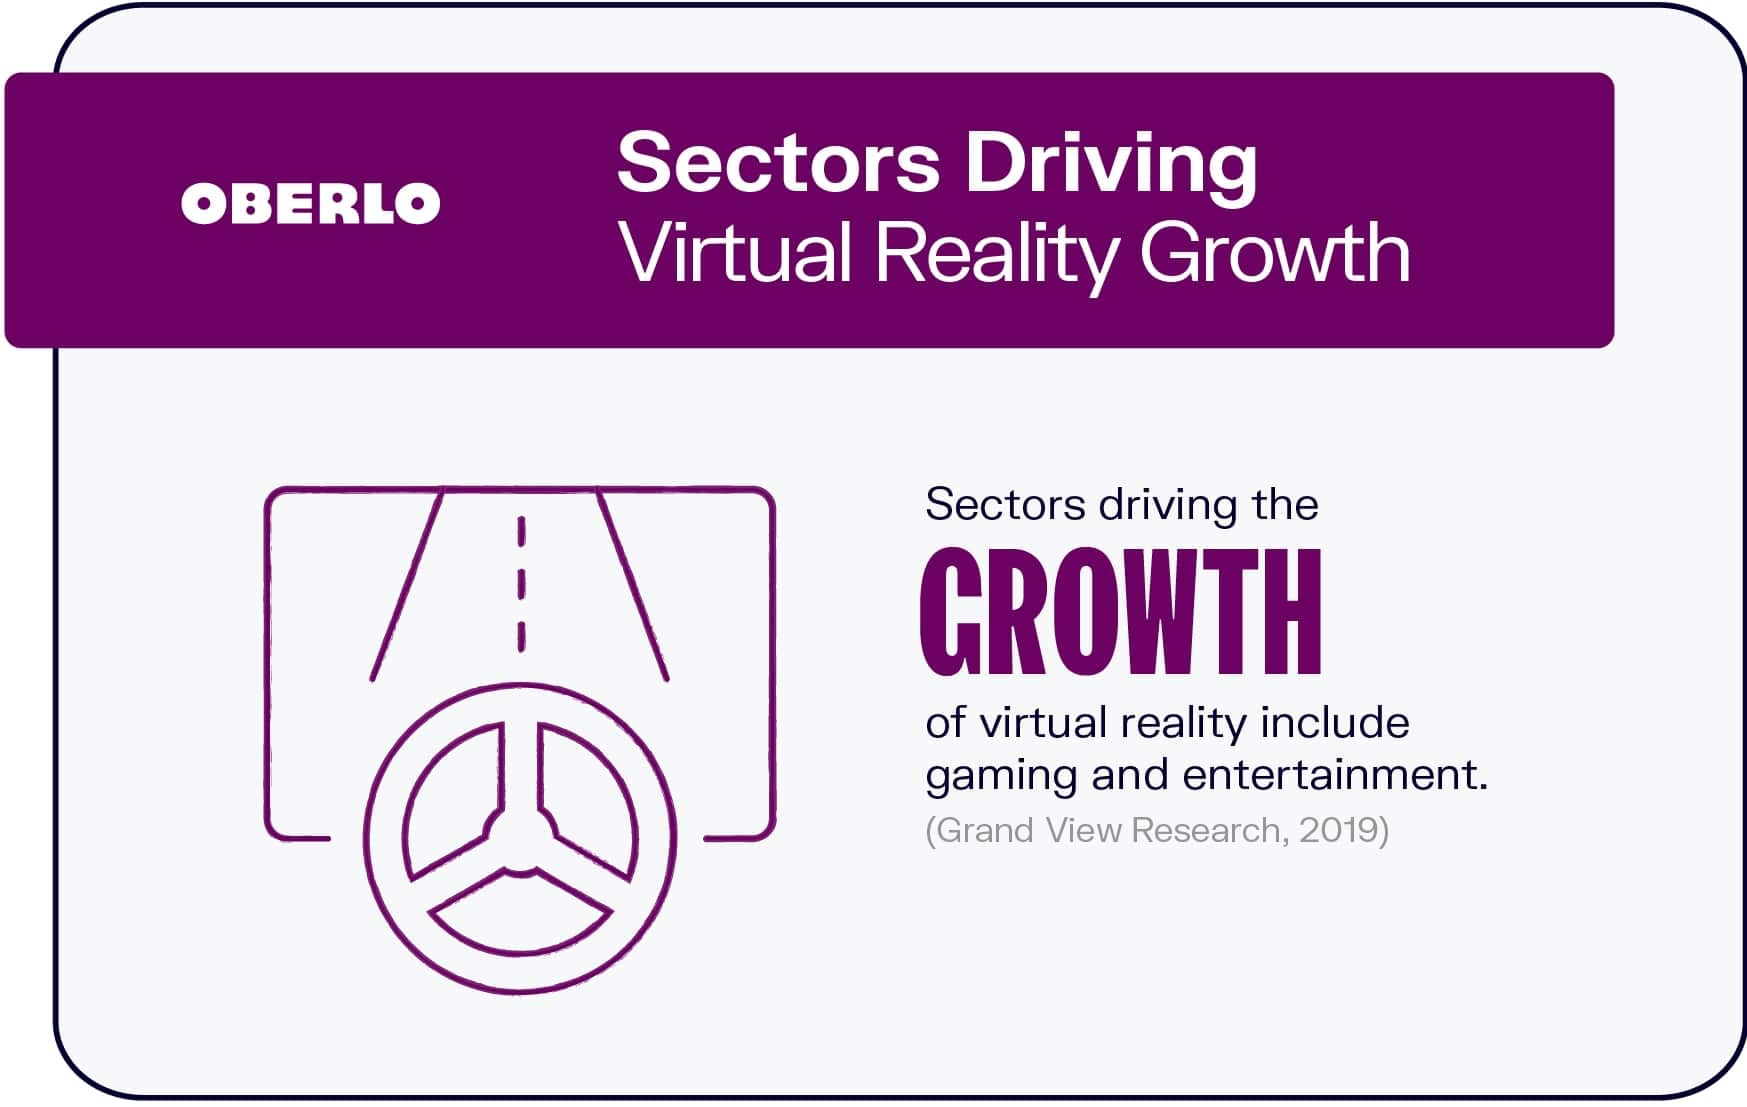 Sectors Driving Virtual Reality Growth